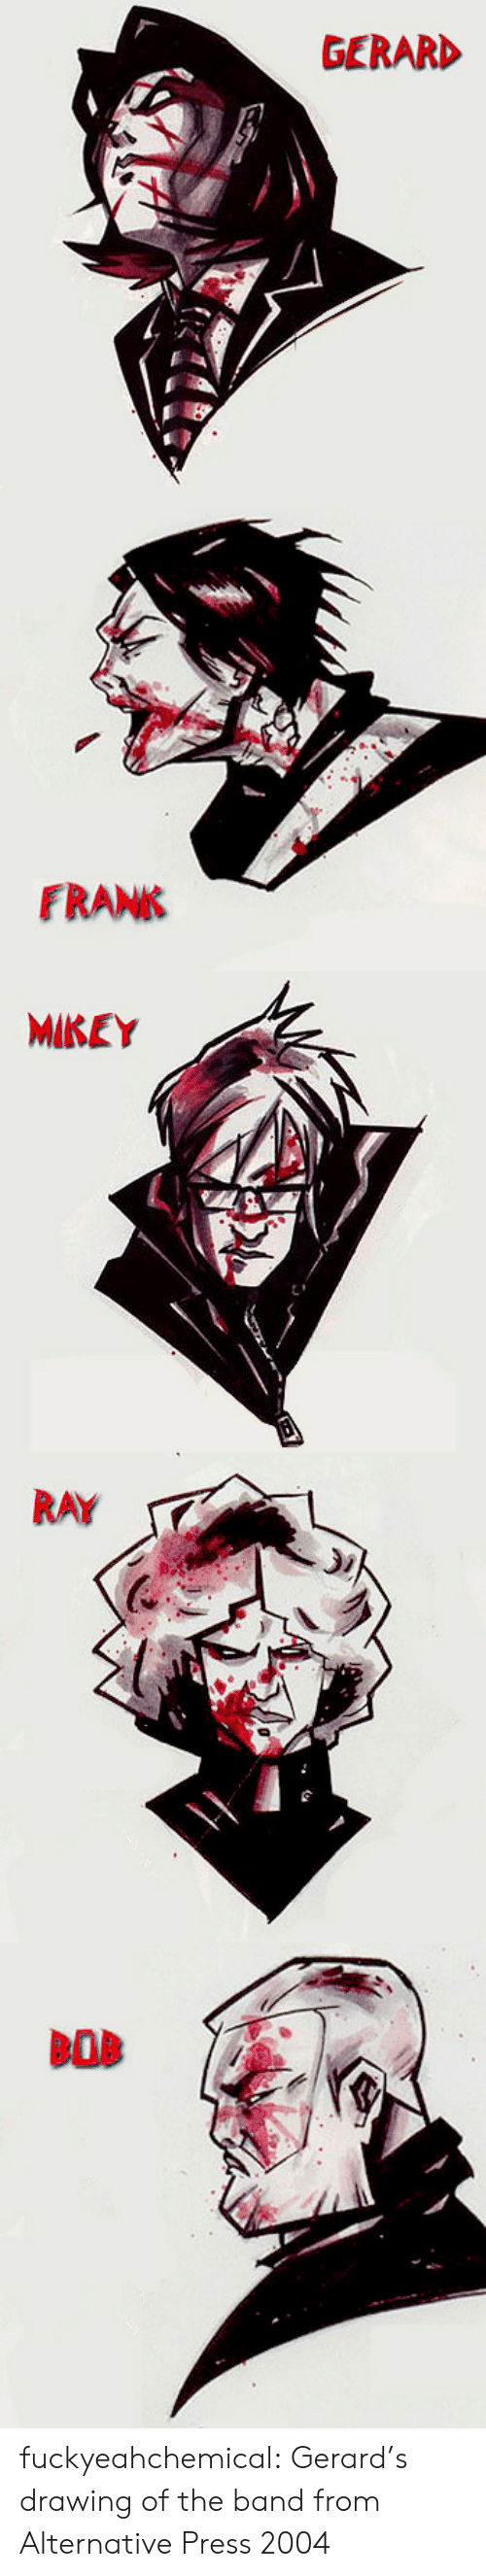 Tumblr, Blog, and Band: GERARD   FRANK   MIKEY   RAY fuckyeahchemical:  Gerard's drawing of the band from Alternative Press 2004